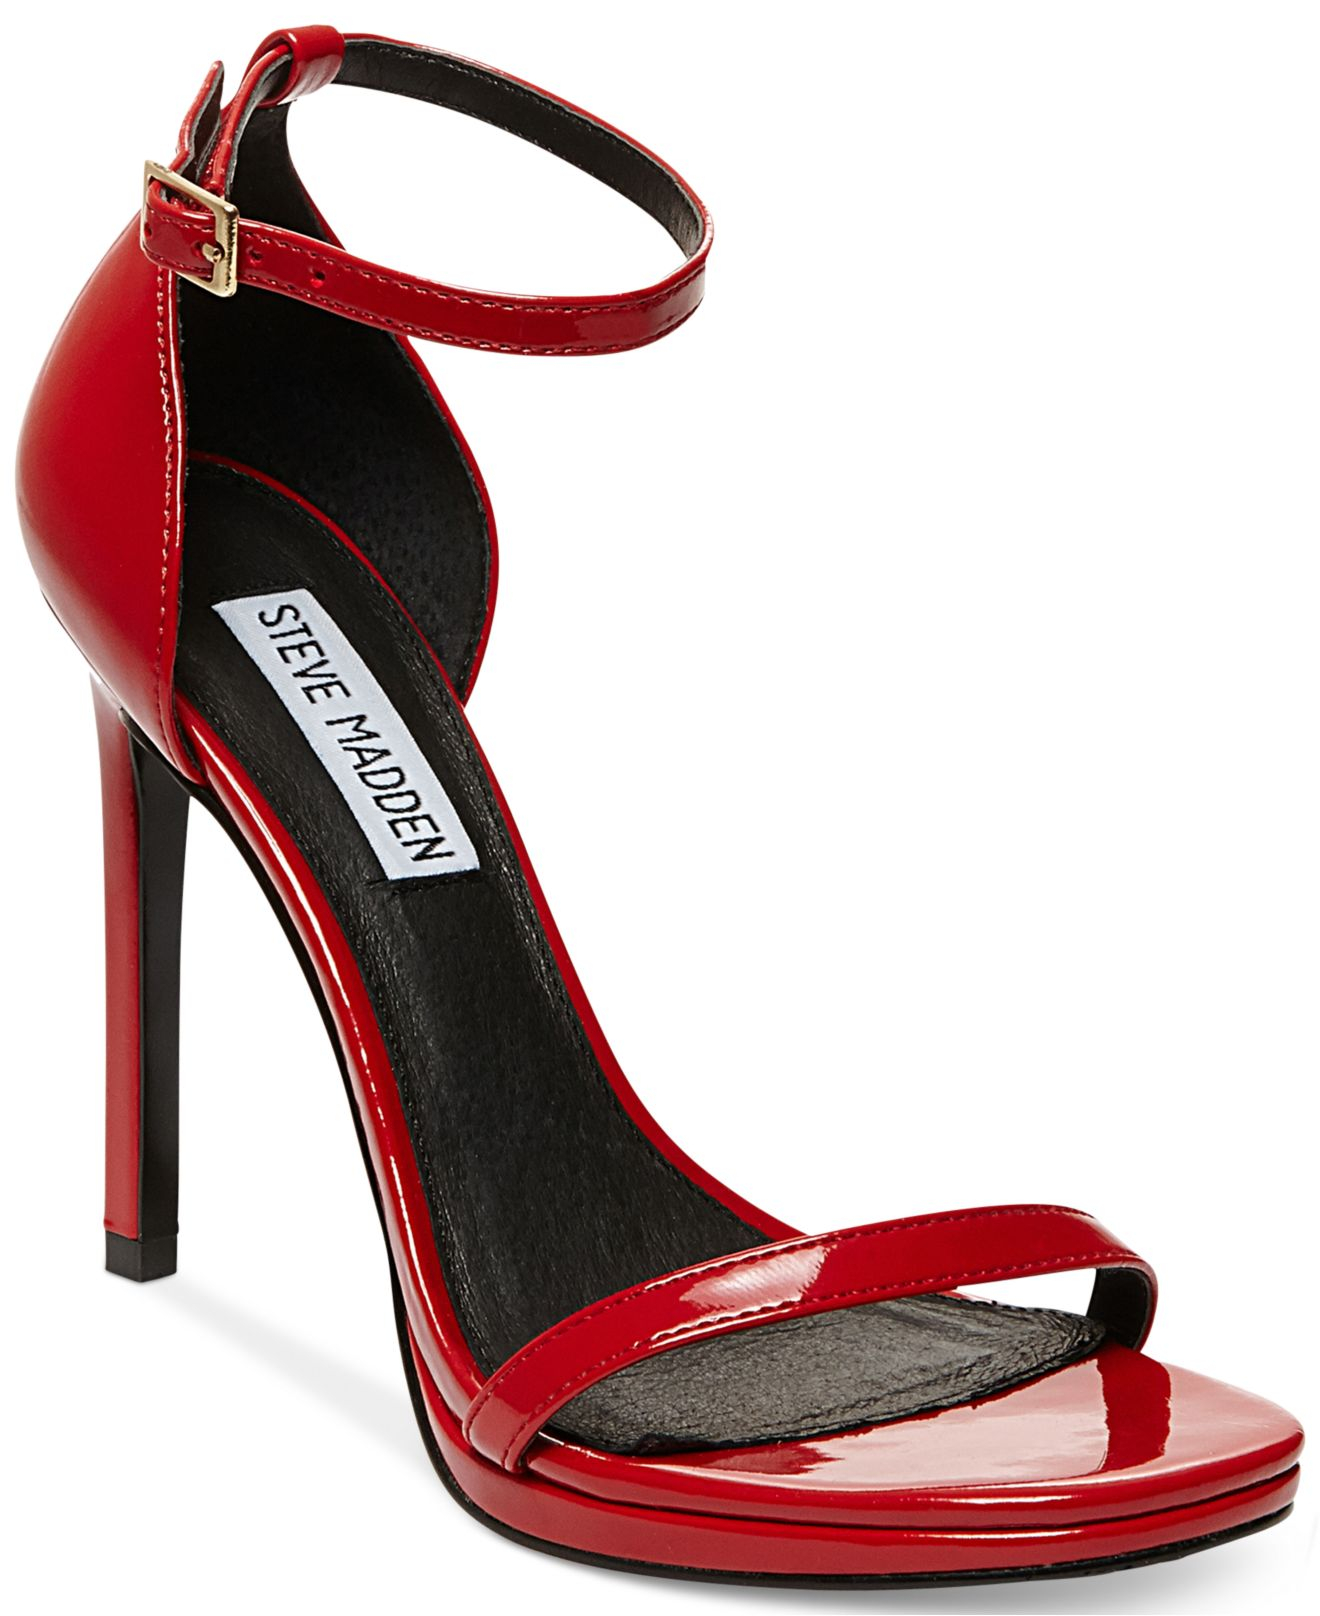 943dedbdc95 Lyst - Steve Madden Women S Gea Two-Piece Dress Sandals in Red